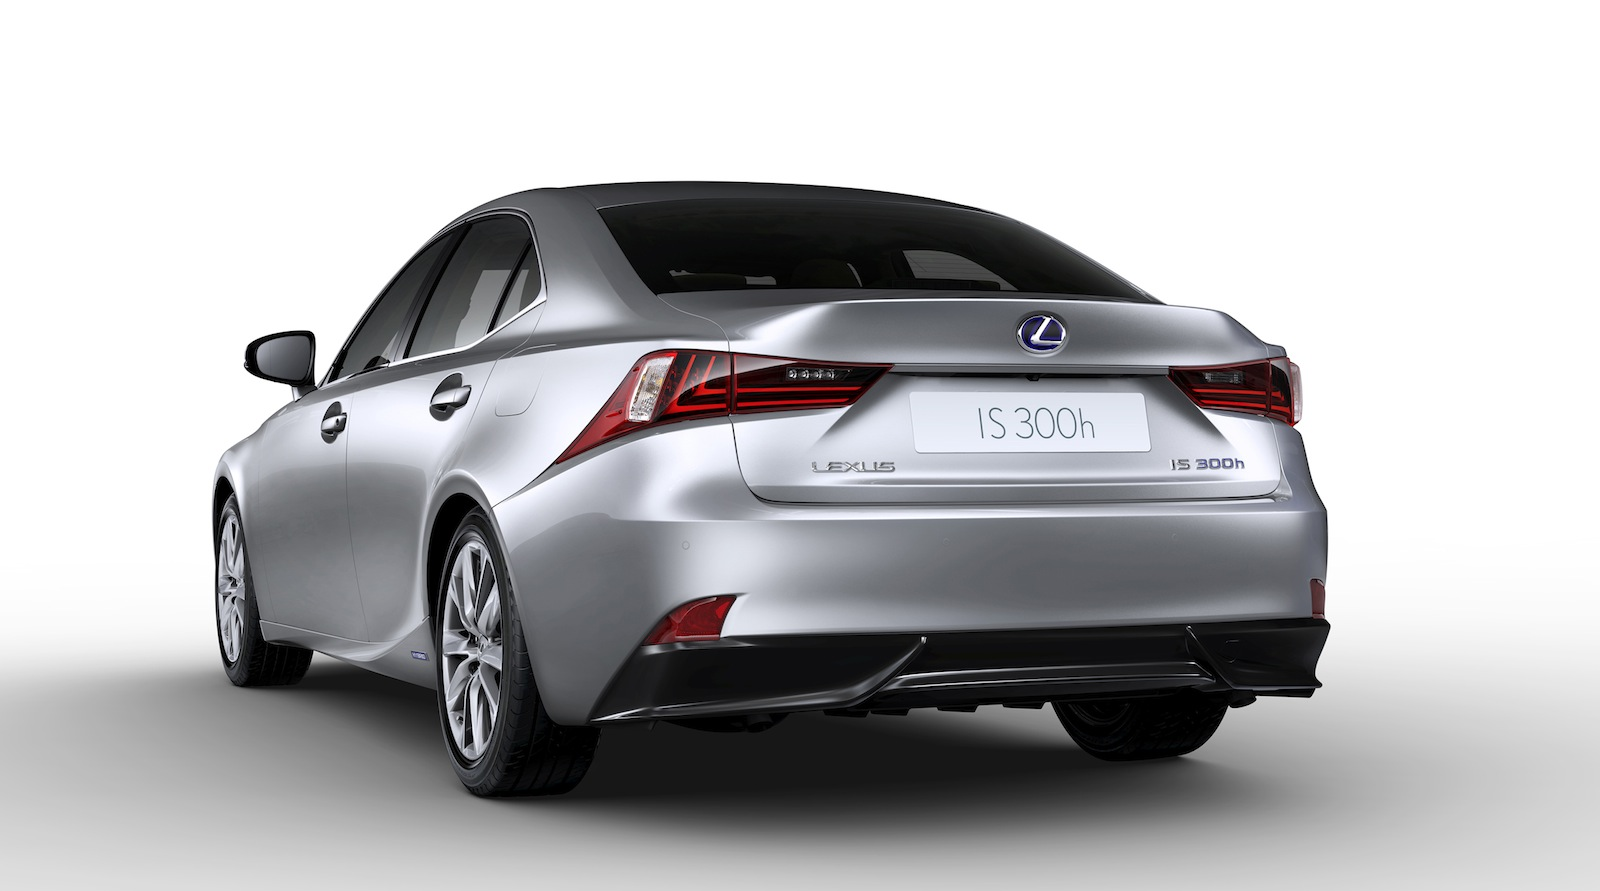 2013 lexus is hybrid to join australian range from q3 photos 1 of 34. Black Bedroom Furniture Sets. Home Design Ideas